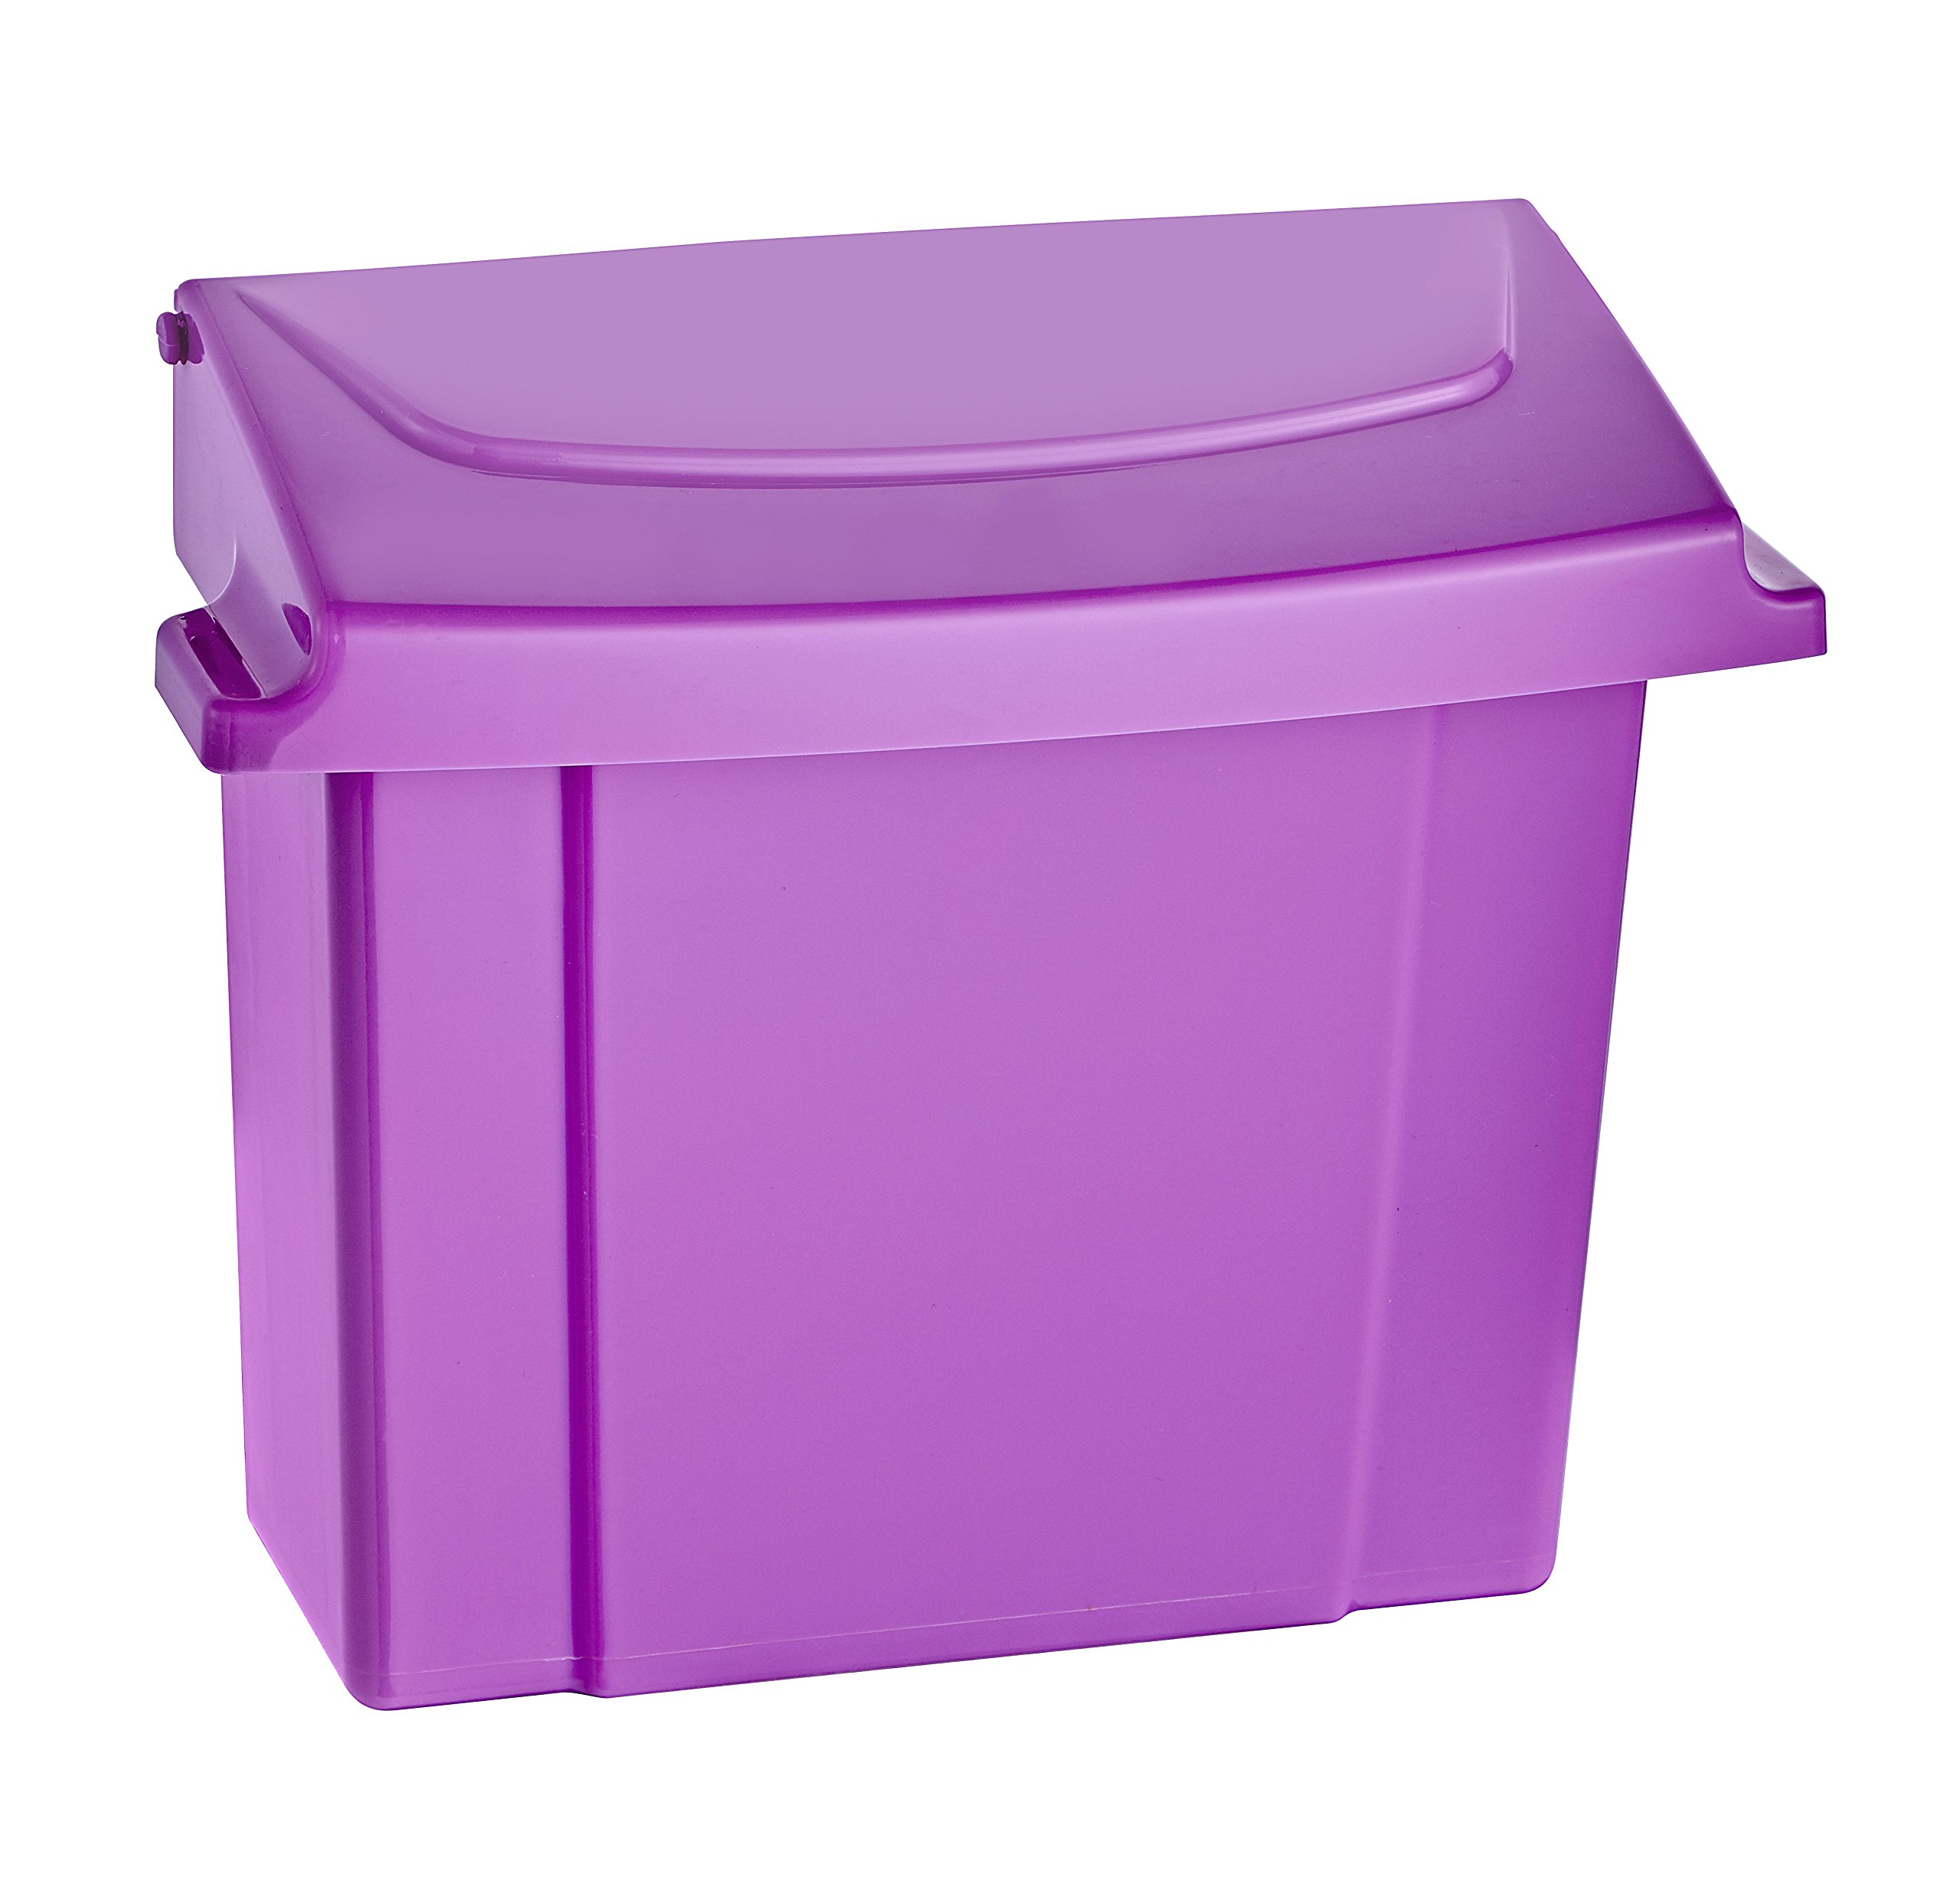 Alpine Sanitary Napkins Receptacle - Feminine Hygiene Products, Tampon & Waste Disposal Container - Durable ABS Plastic - Seals Tightly & Traps Odors -Easy Installation Hardware Included (Purple) by Alpine